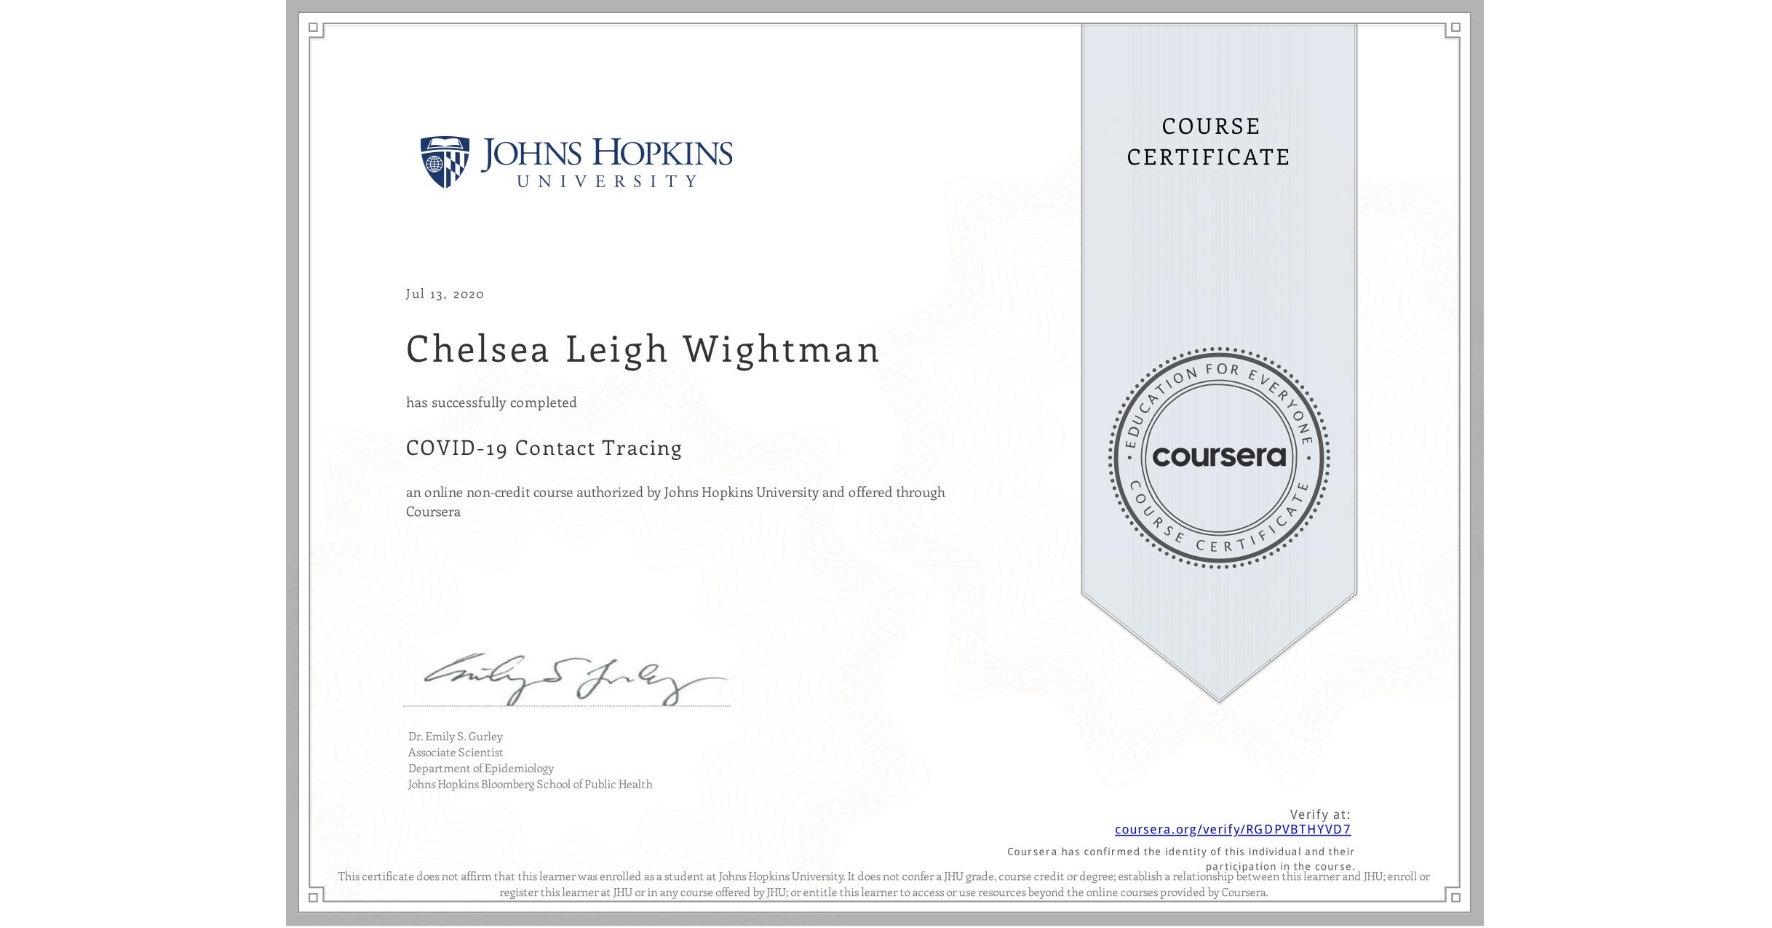 View certificate for Chelsea Leigh Wightman, COVID-19 Contact Tracing, an online non-credit course authorized by Johns Hopkins University and offered through Coursera